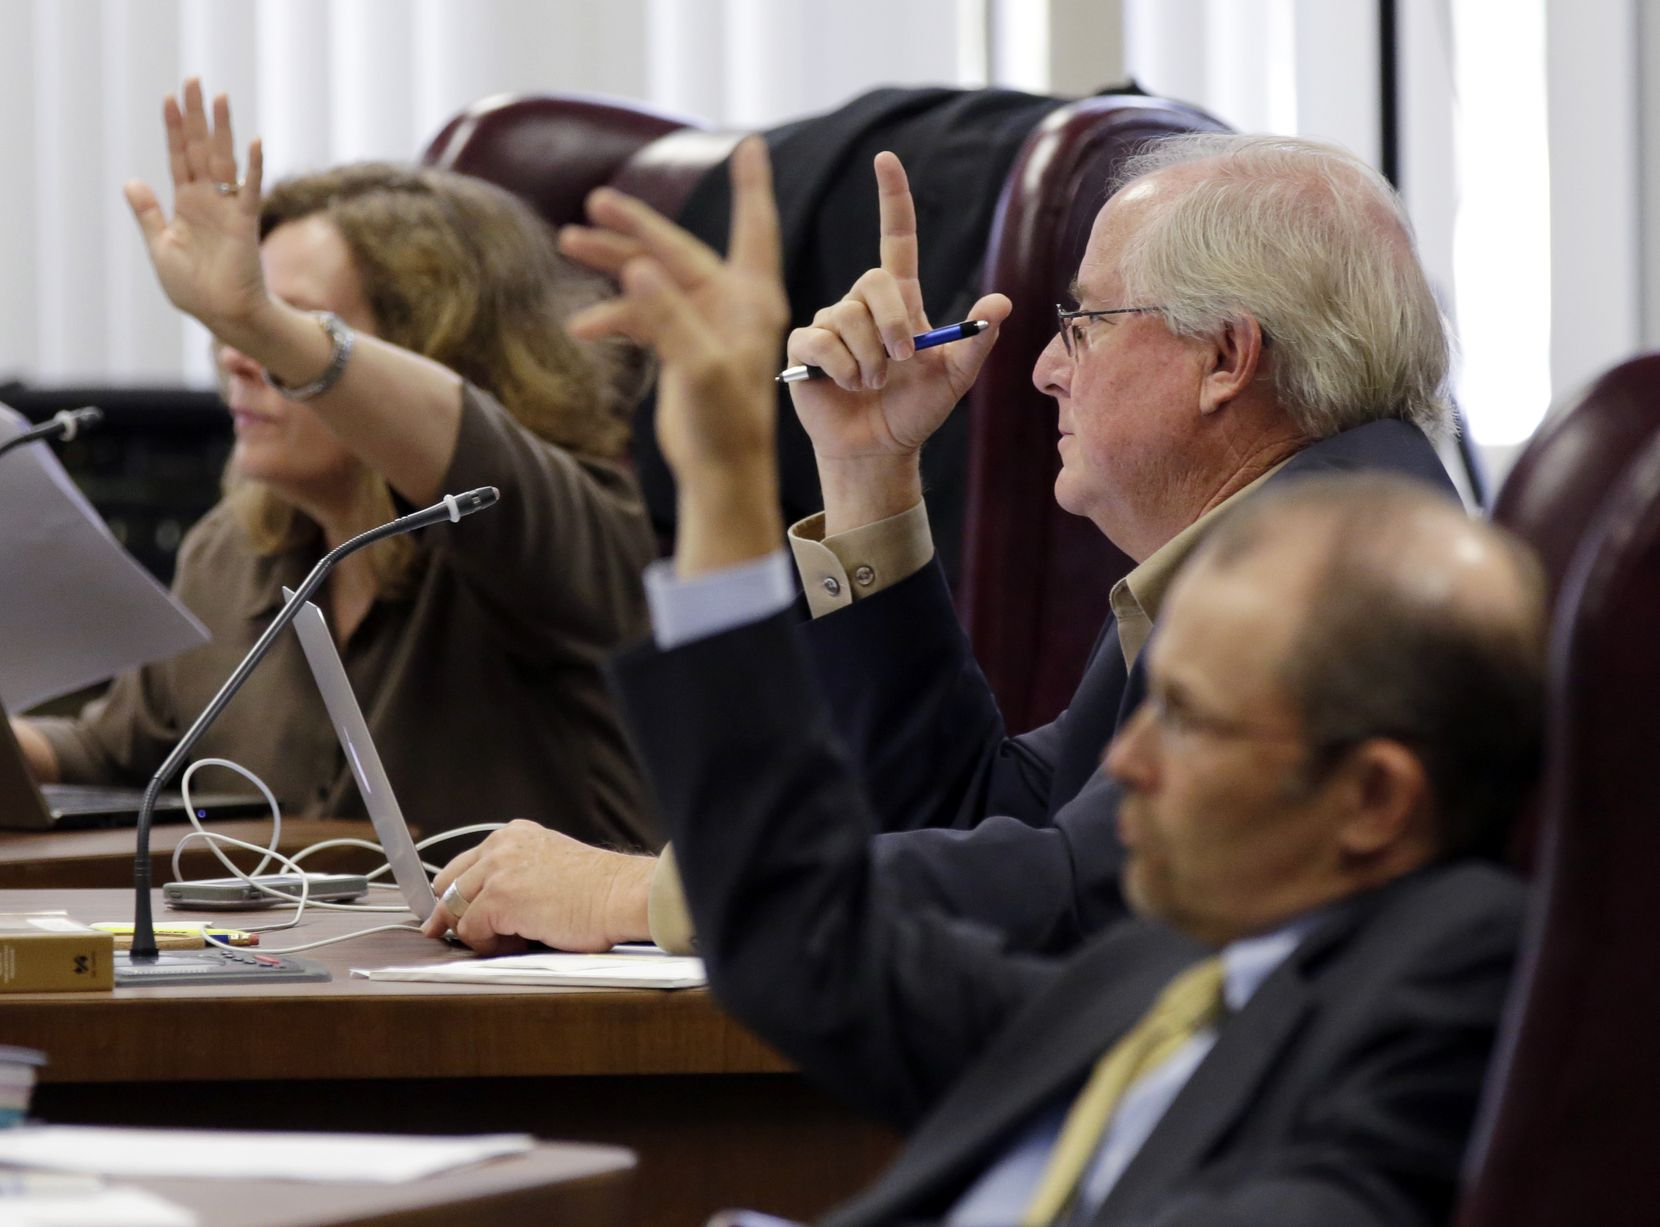 Texas Board of Education members (from left) Donna Bahorich, David Bradley and  Thomas Ratliff had questions during a public hearing in September for new textbooks up for adoption and use in classrooms statewide.